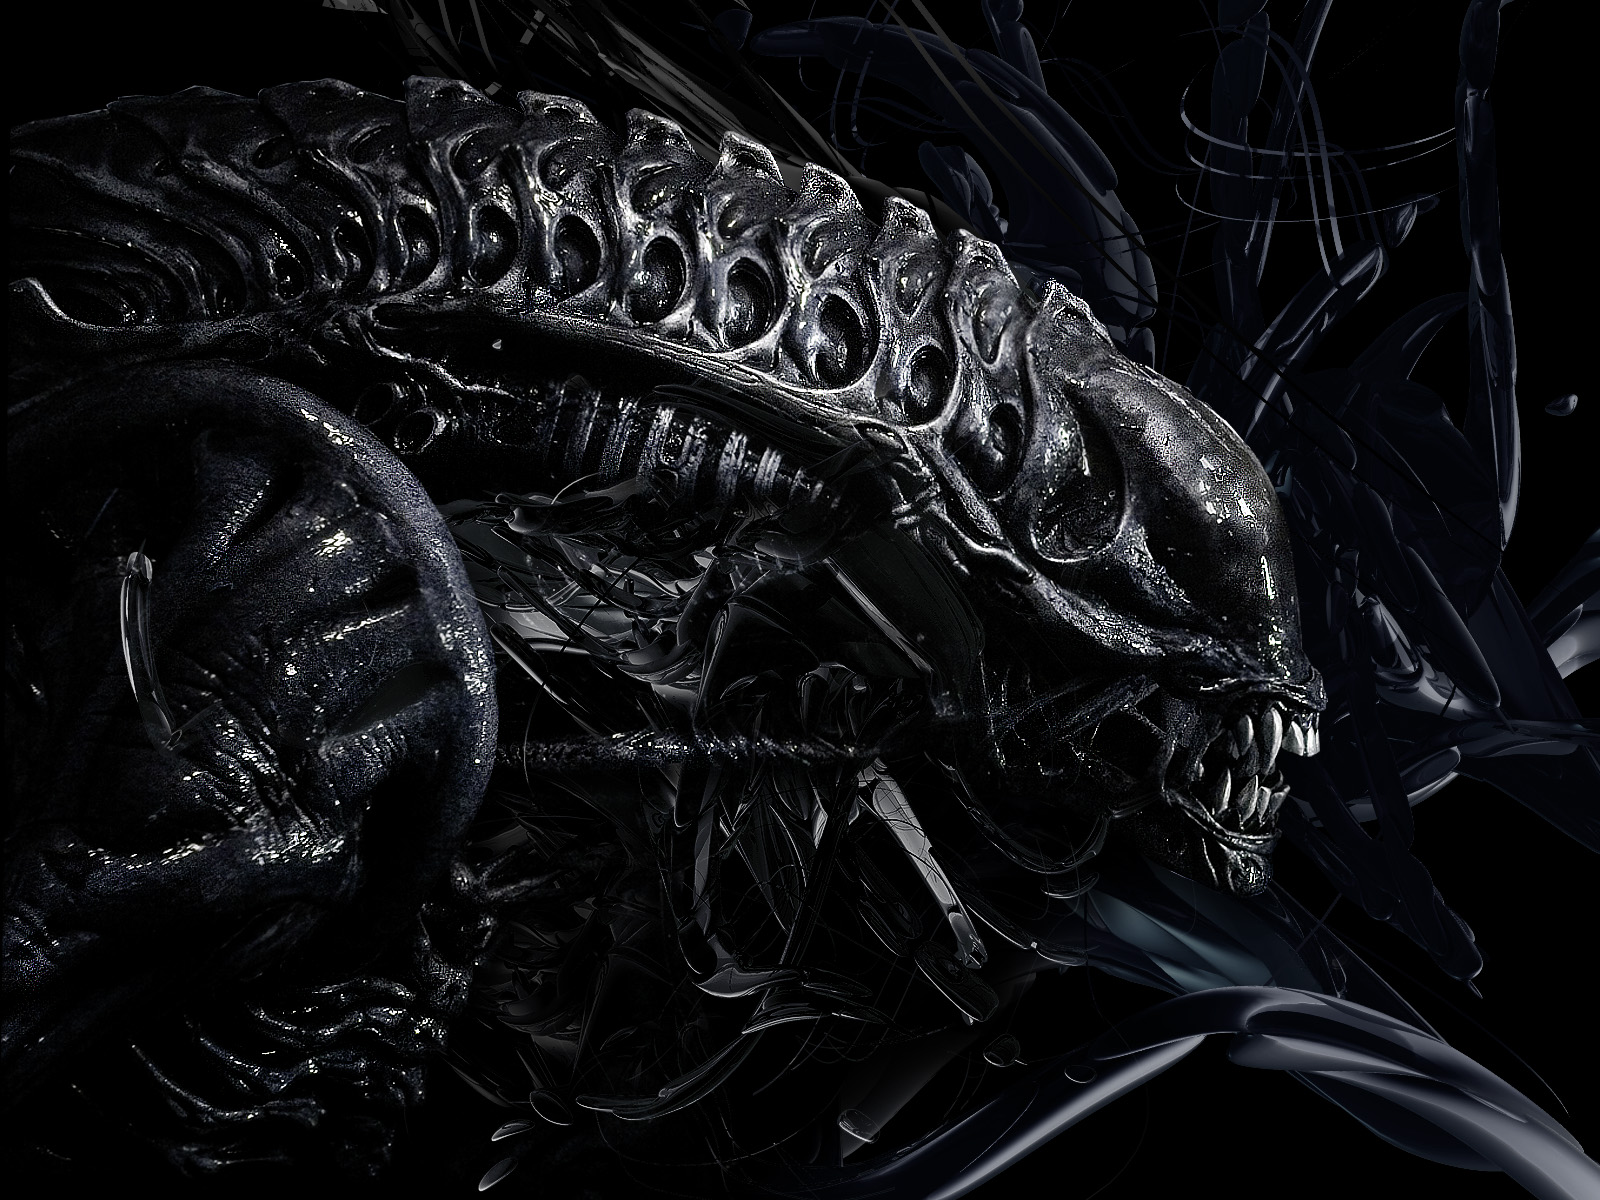 alien by ekud customization wallpaper abstract 2007 2015 ekud an 1600x1200